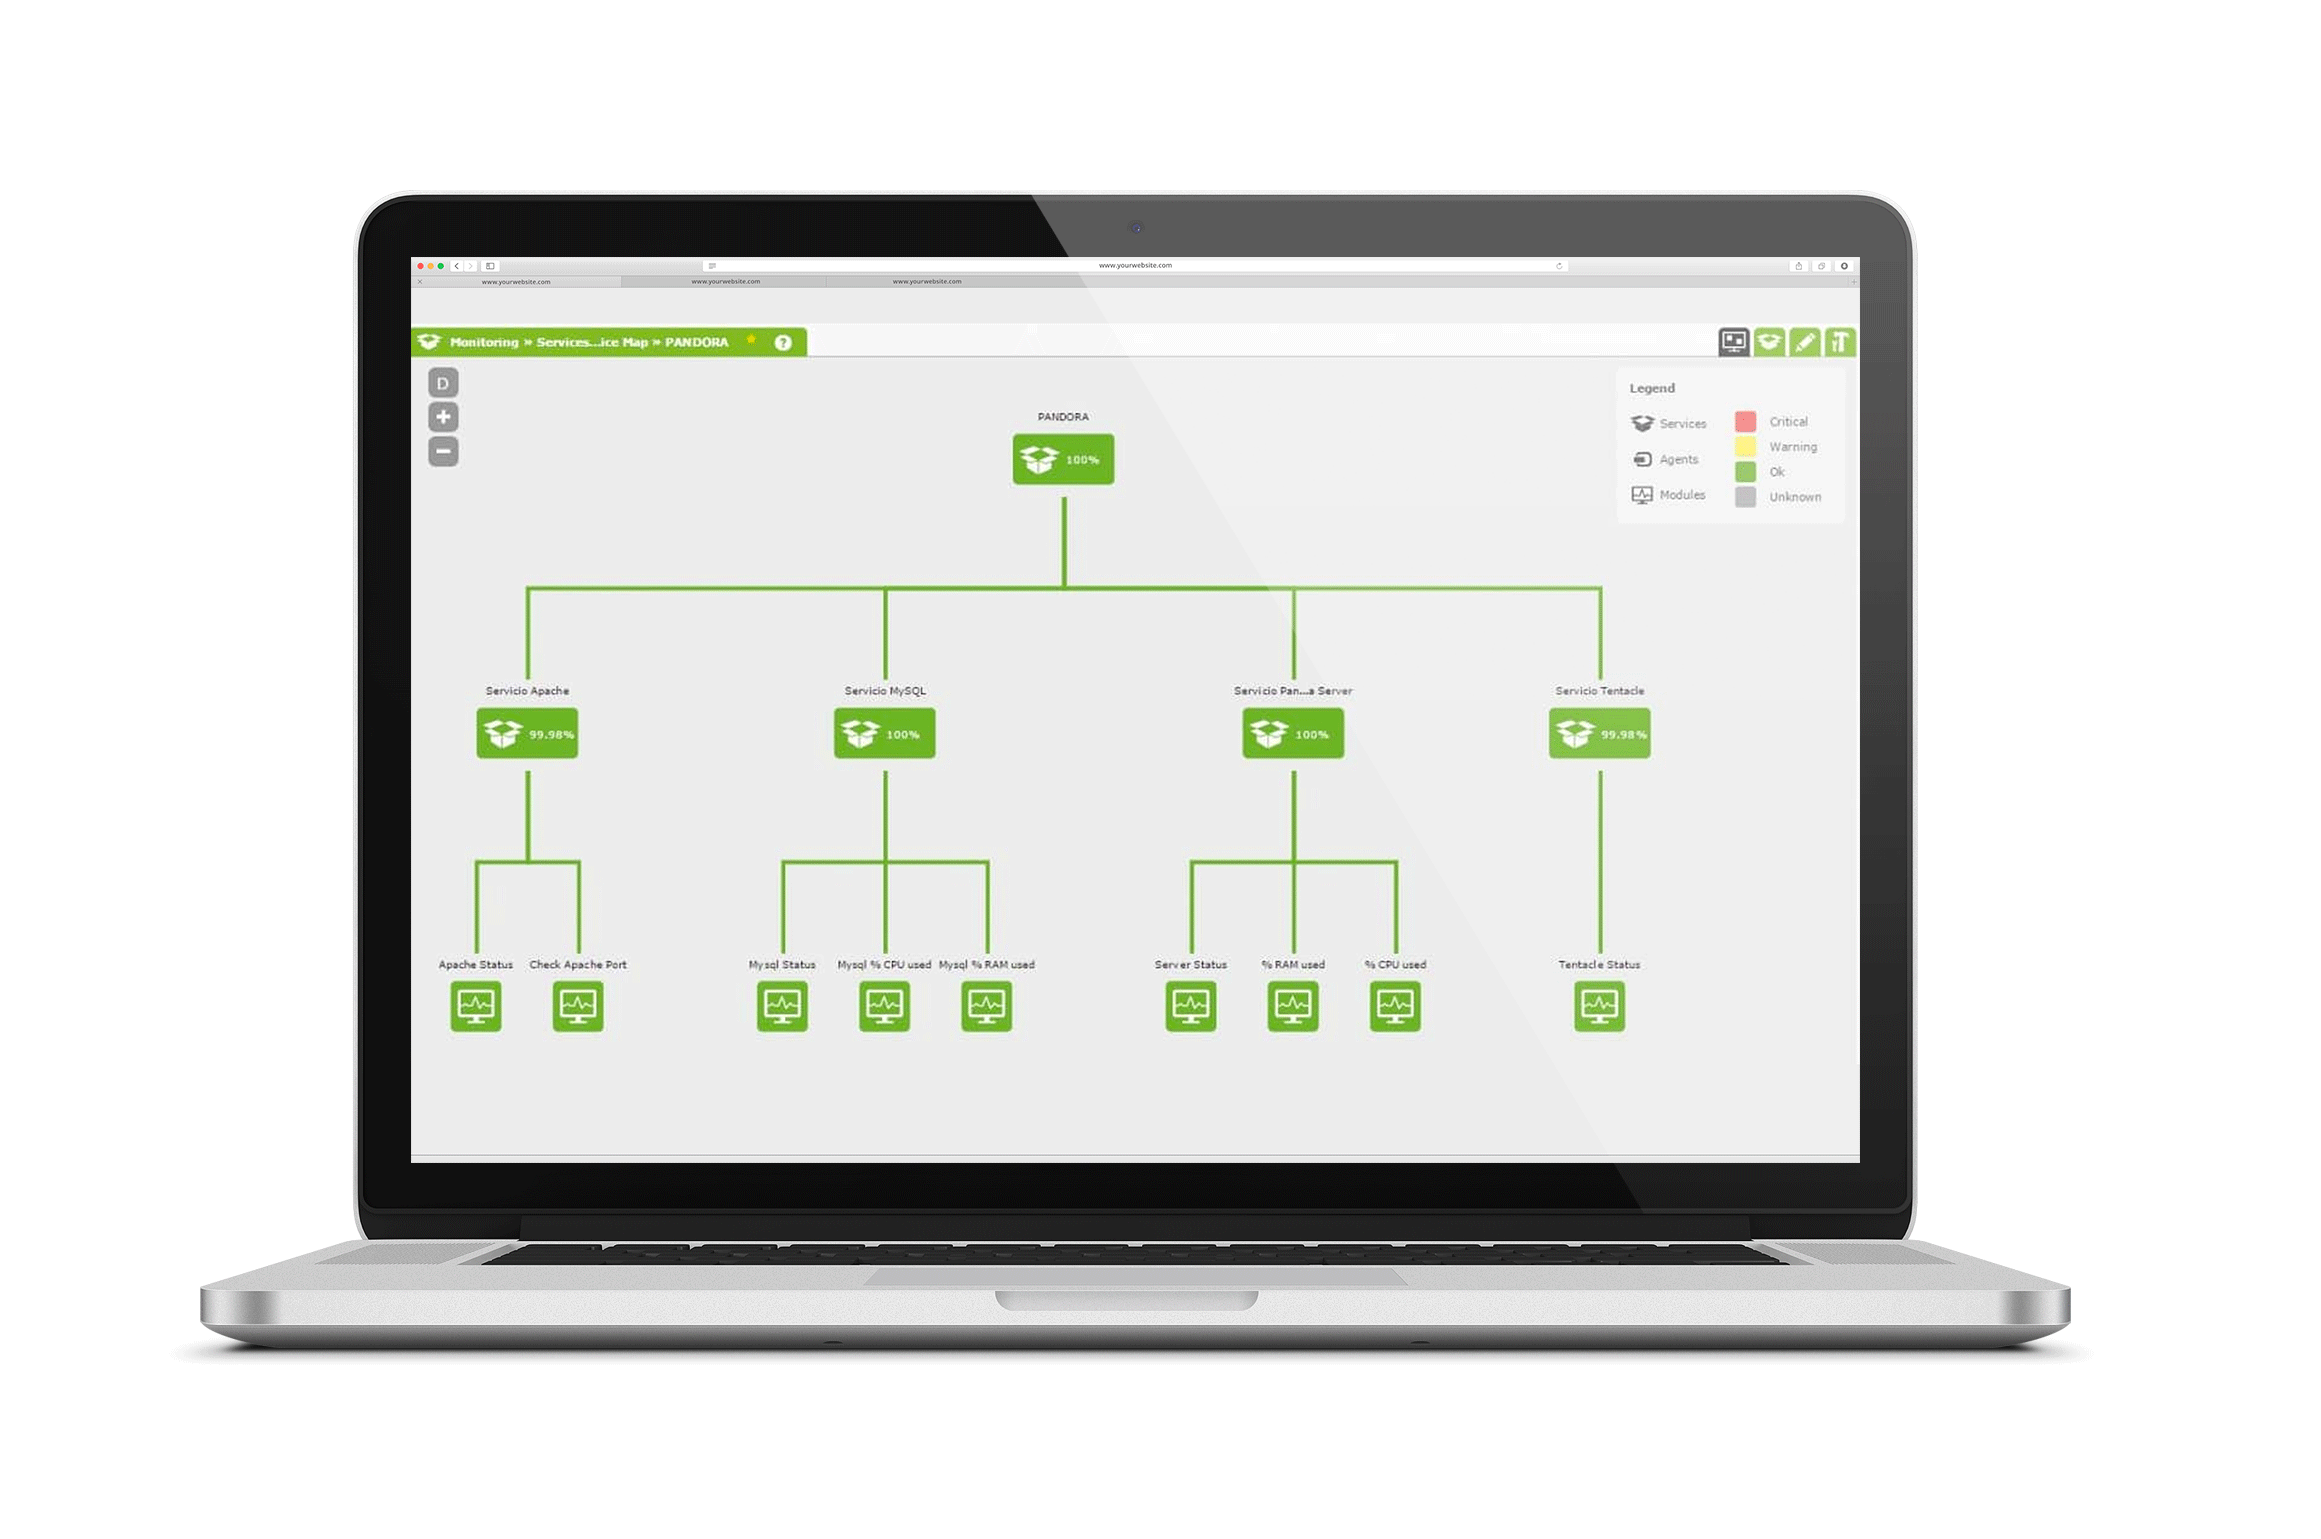 network monitor service map tree